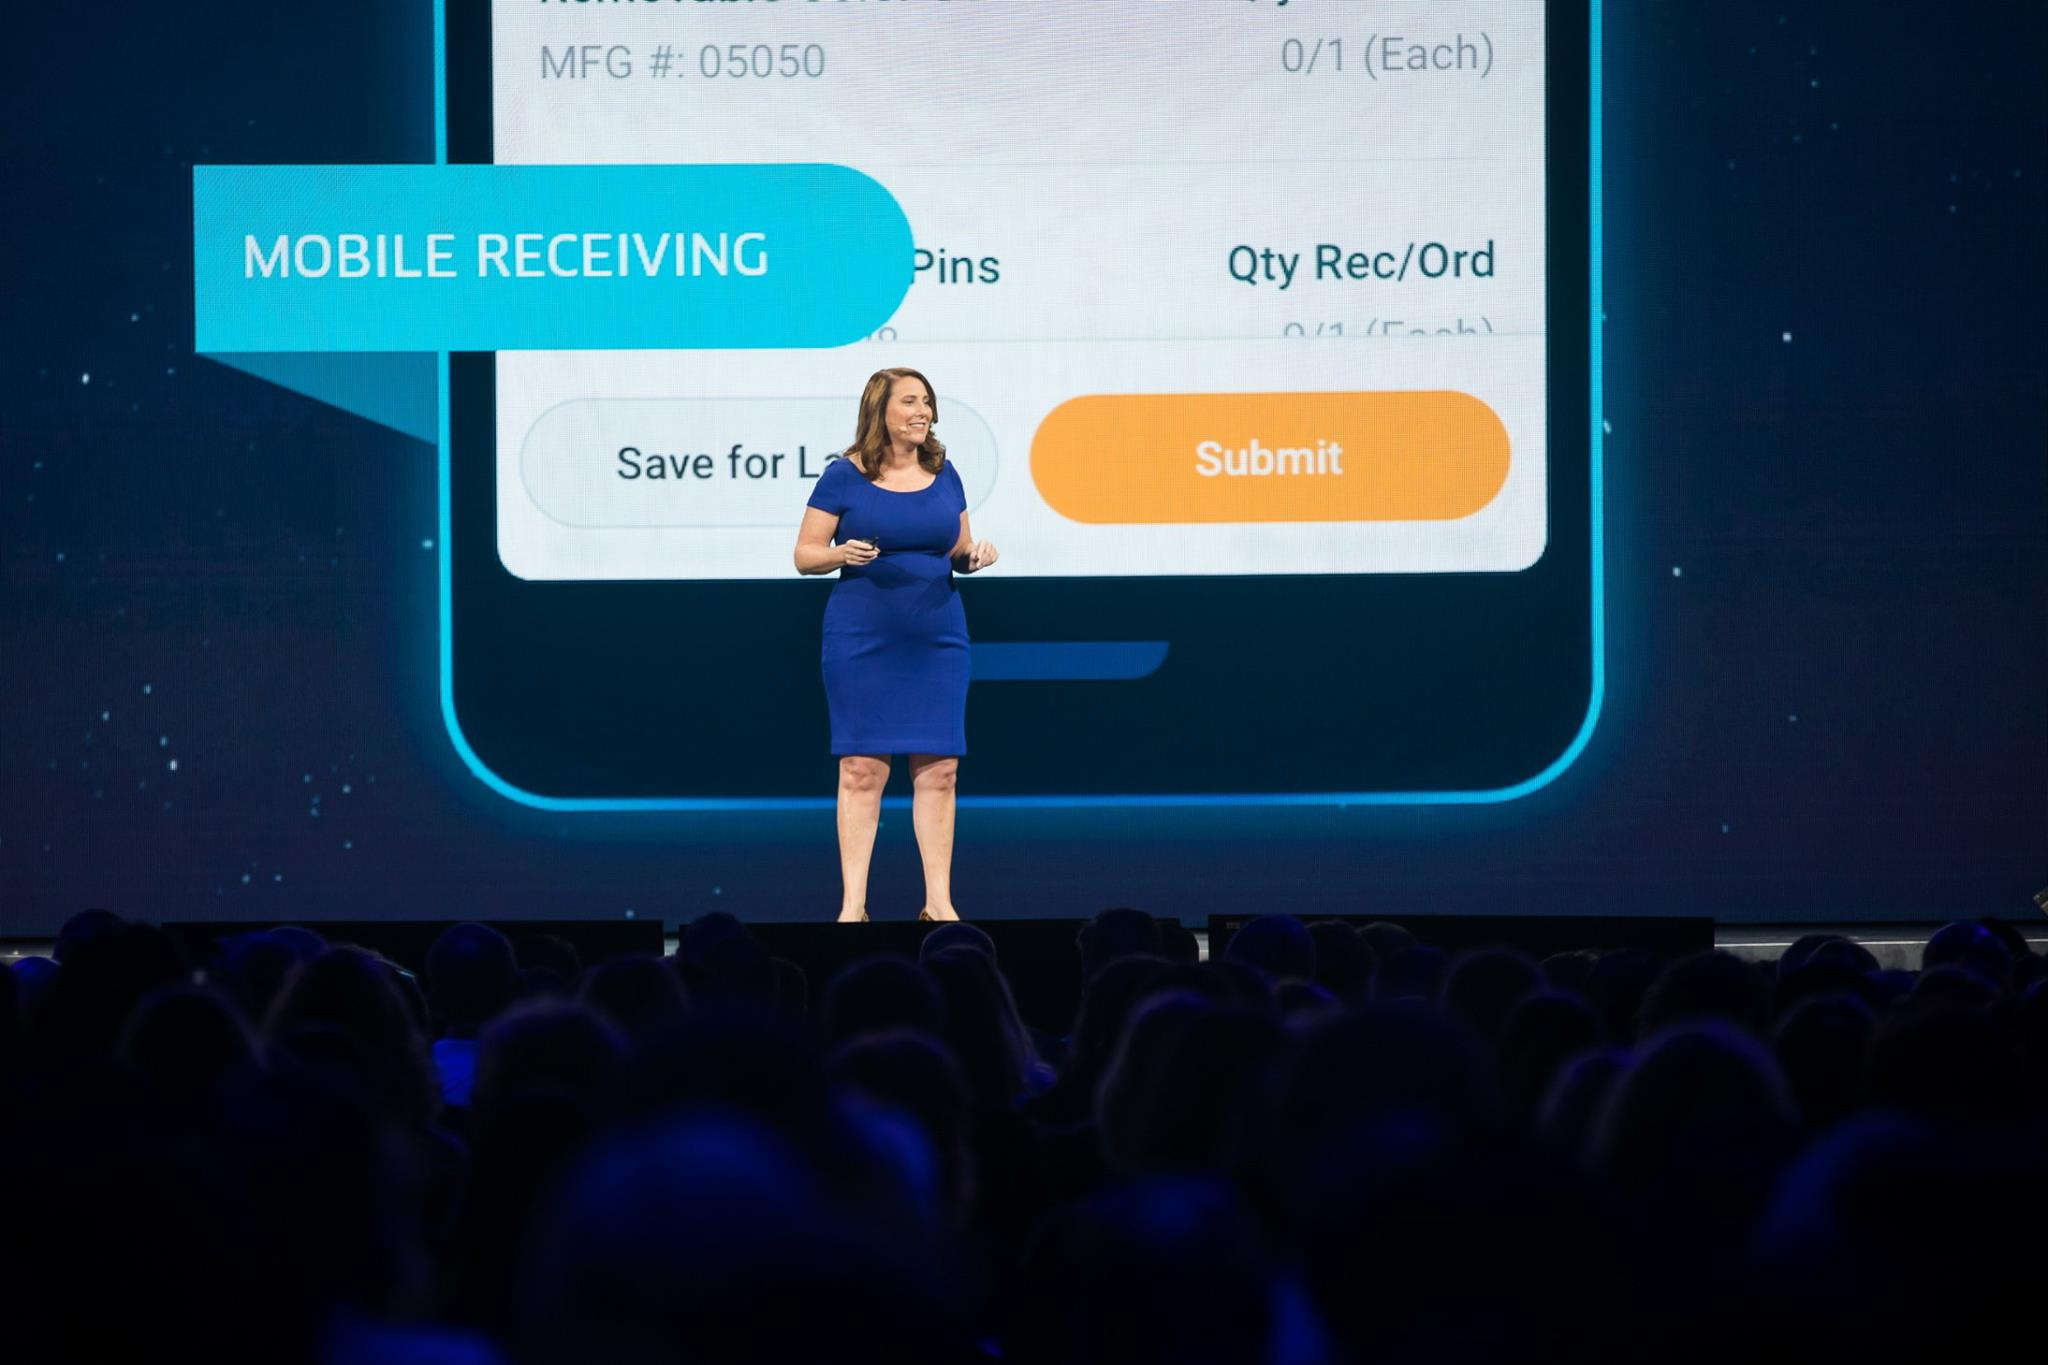 Workday staff represent product features at a conference